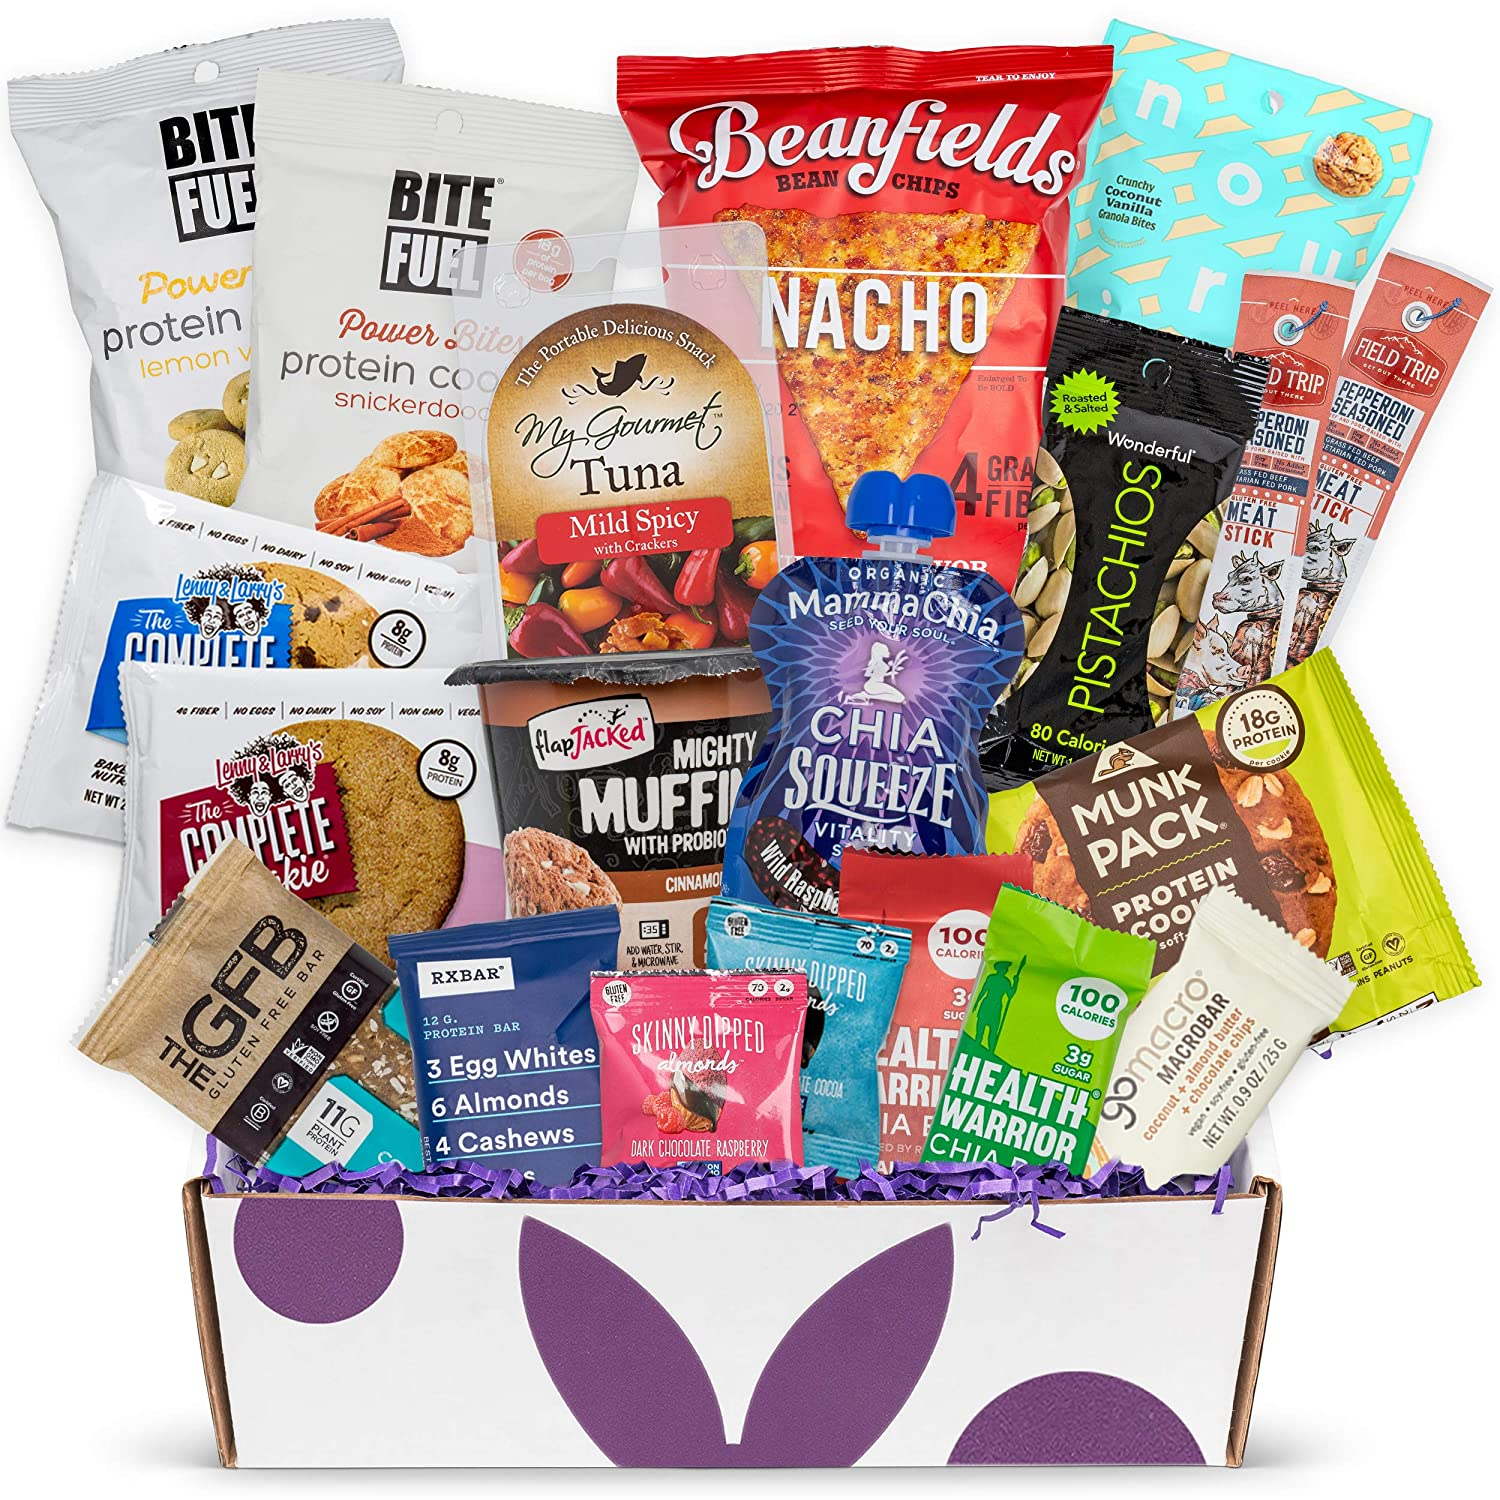 High Protein Fitness Healthy Snack Box: Premium Mix of Healthy Gourmet Protein Snacks On The Go Meal Replacements, Perfect Fitness Care Package Gifts for Military, Athletes Or College Students